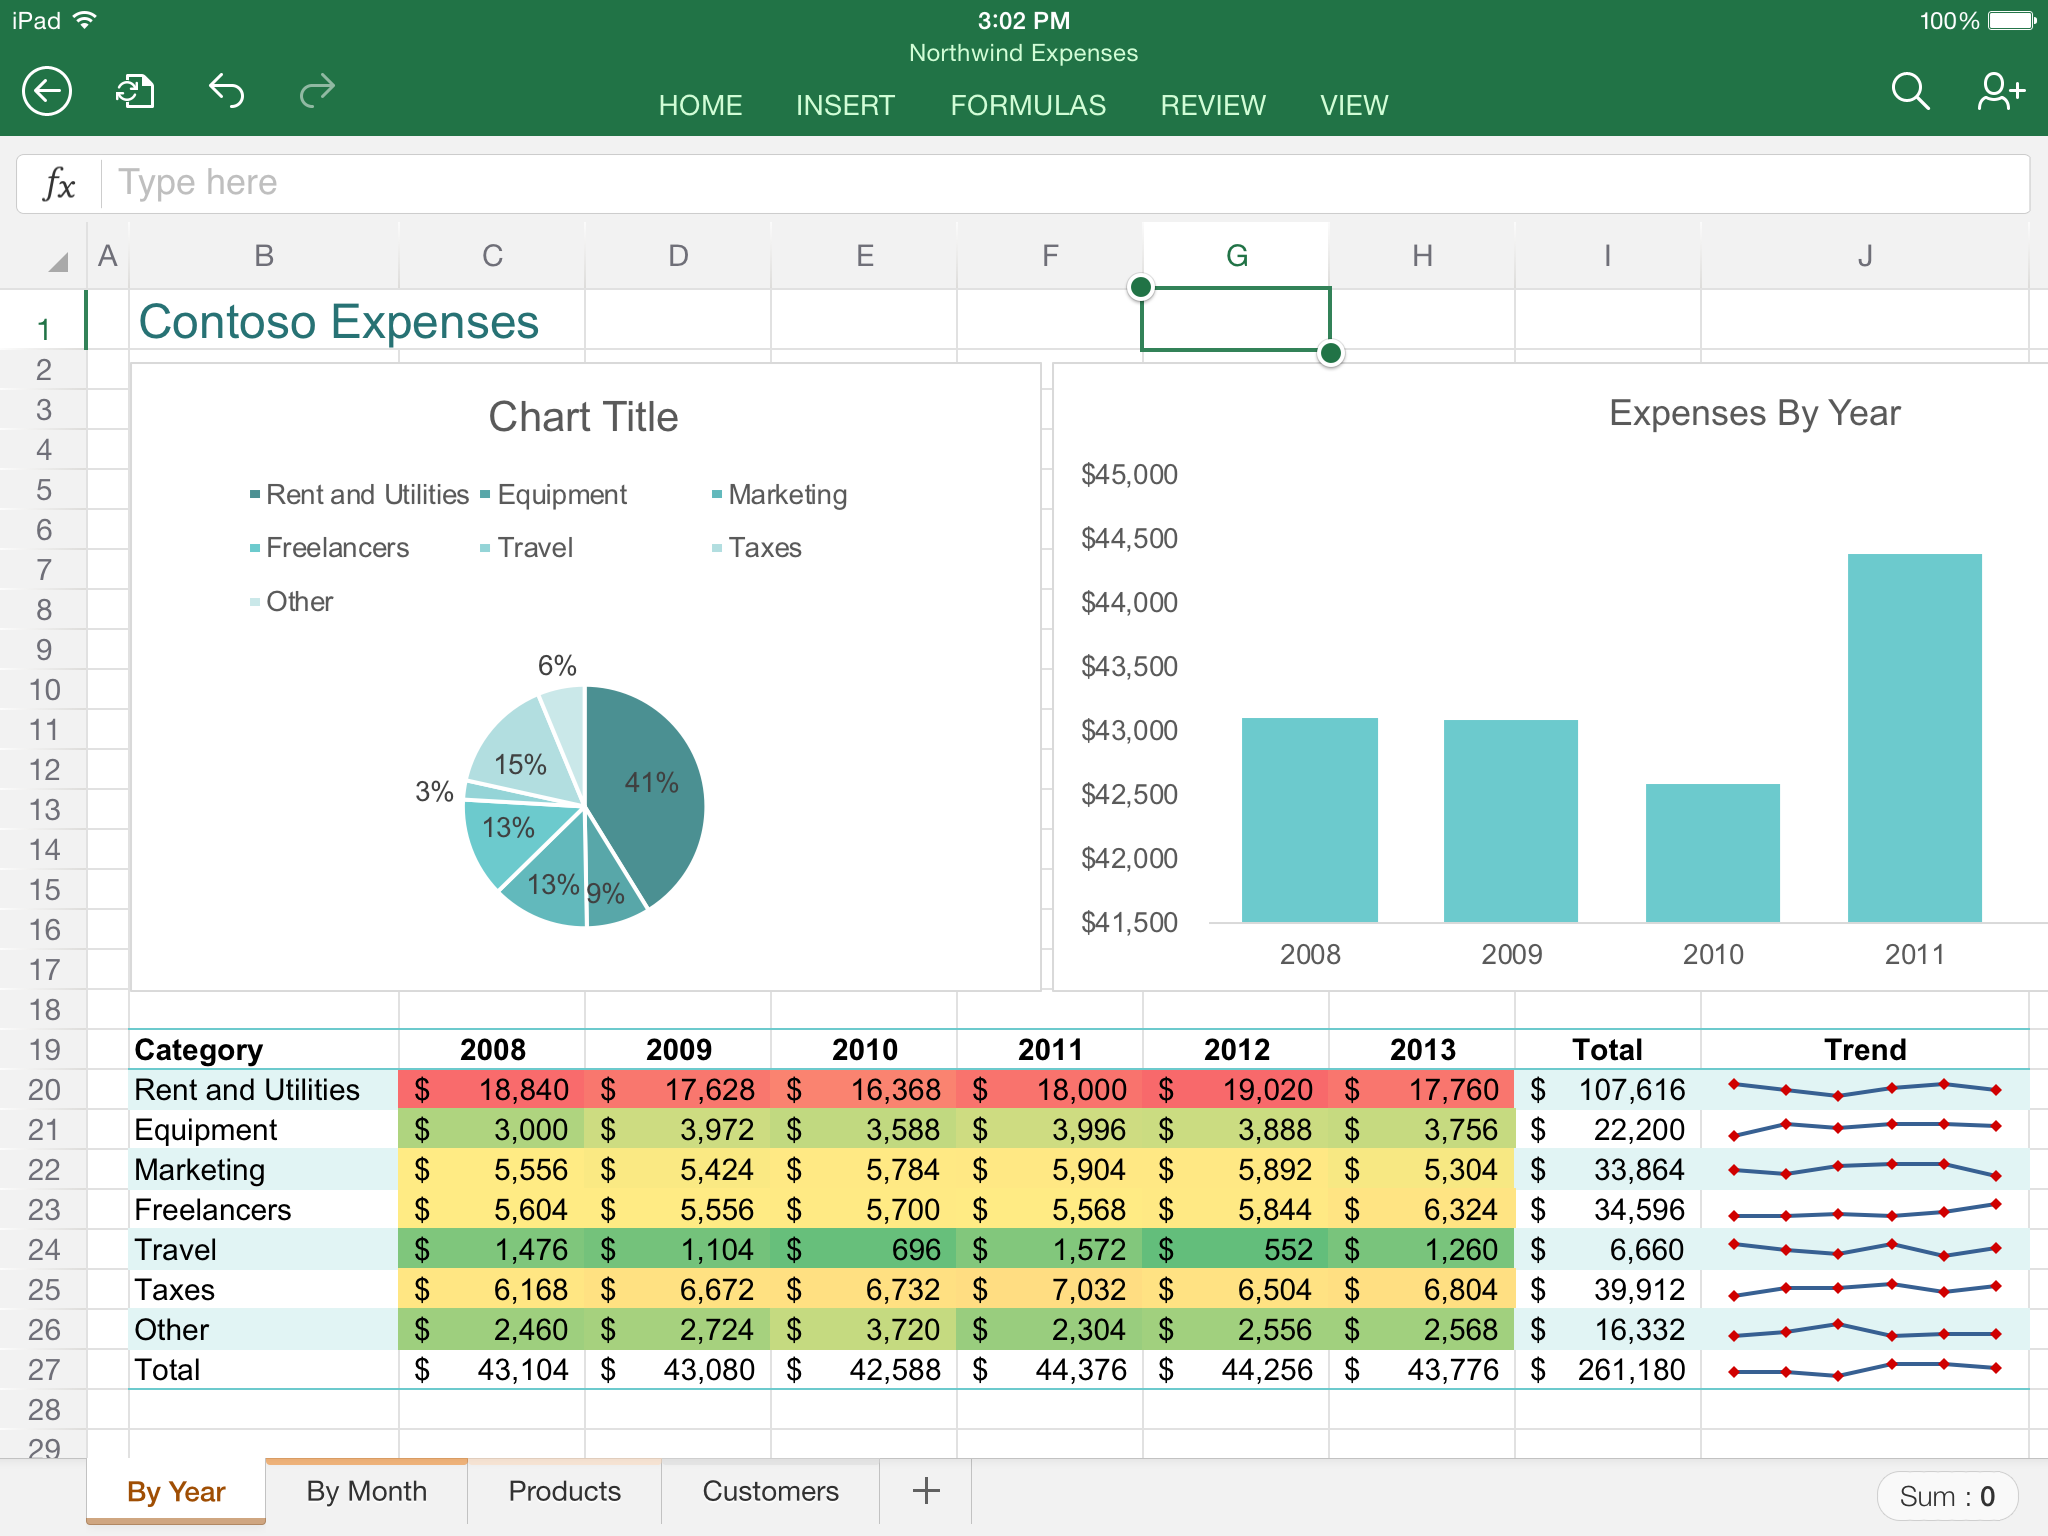 Ediblewildsus  Terrific App Highlight Excel  Mobile Digital Now With Fair Excel In Action With Easy On The Eye How To Parse Data In Excel Also Dcf Excel Template In Addition Calculate Change In Excel And Excel Quotes As Well As Excel Alphabetize Additionally How To View Duplicates In Excel From Youstonybrookedu With Ediblewildsus  Fair App Highlight Excel  Mobile Digital Now With Easy On The Eye Excel In Action And Terrific How To Parse Data In Excel Also Dcf Excel Template In Addition Calculate Change In Excel From Youstonybrookedu